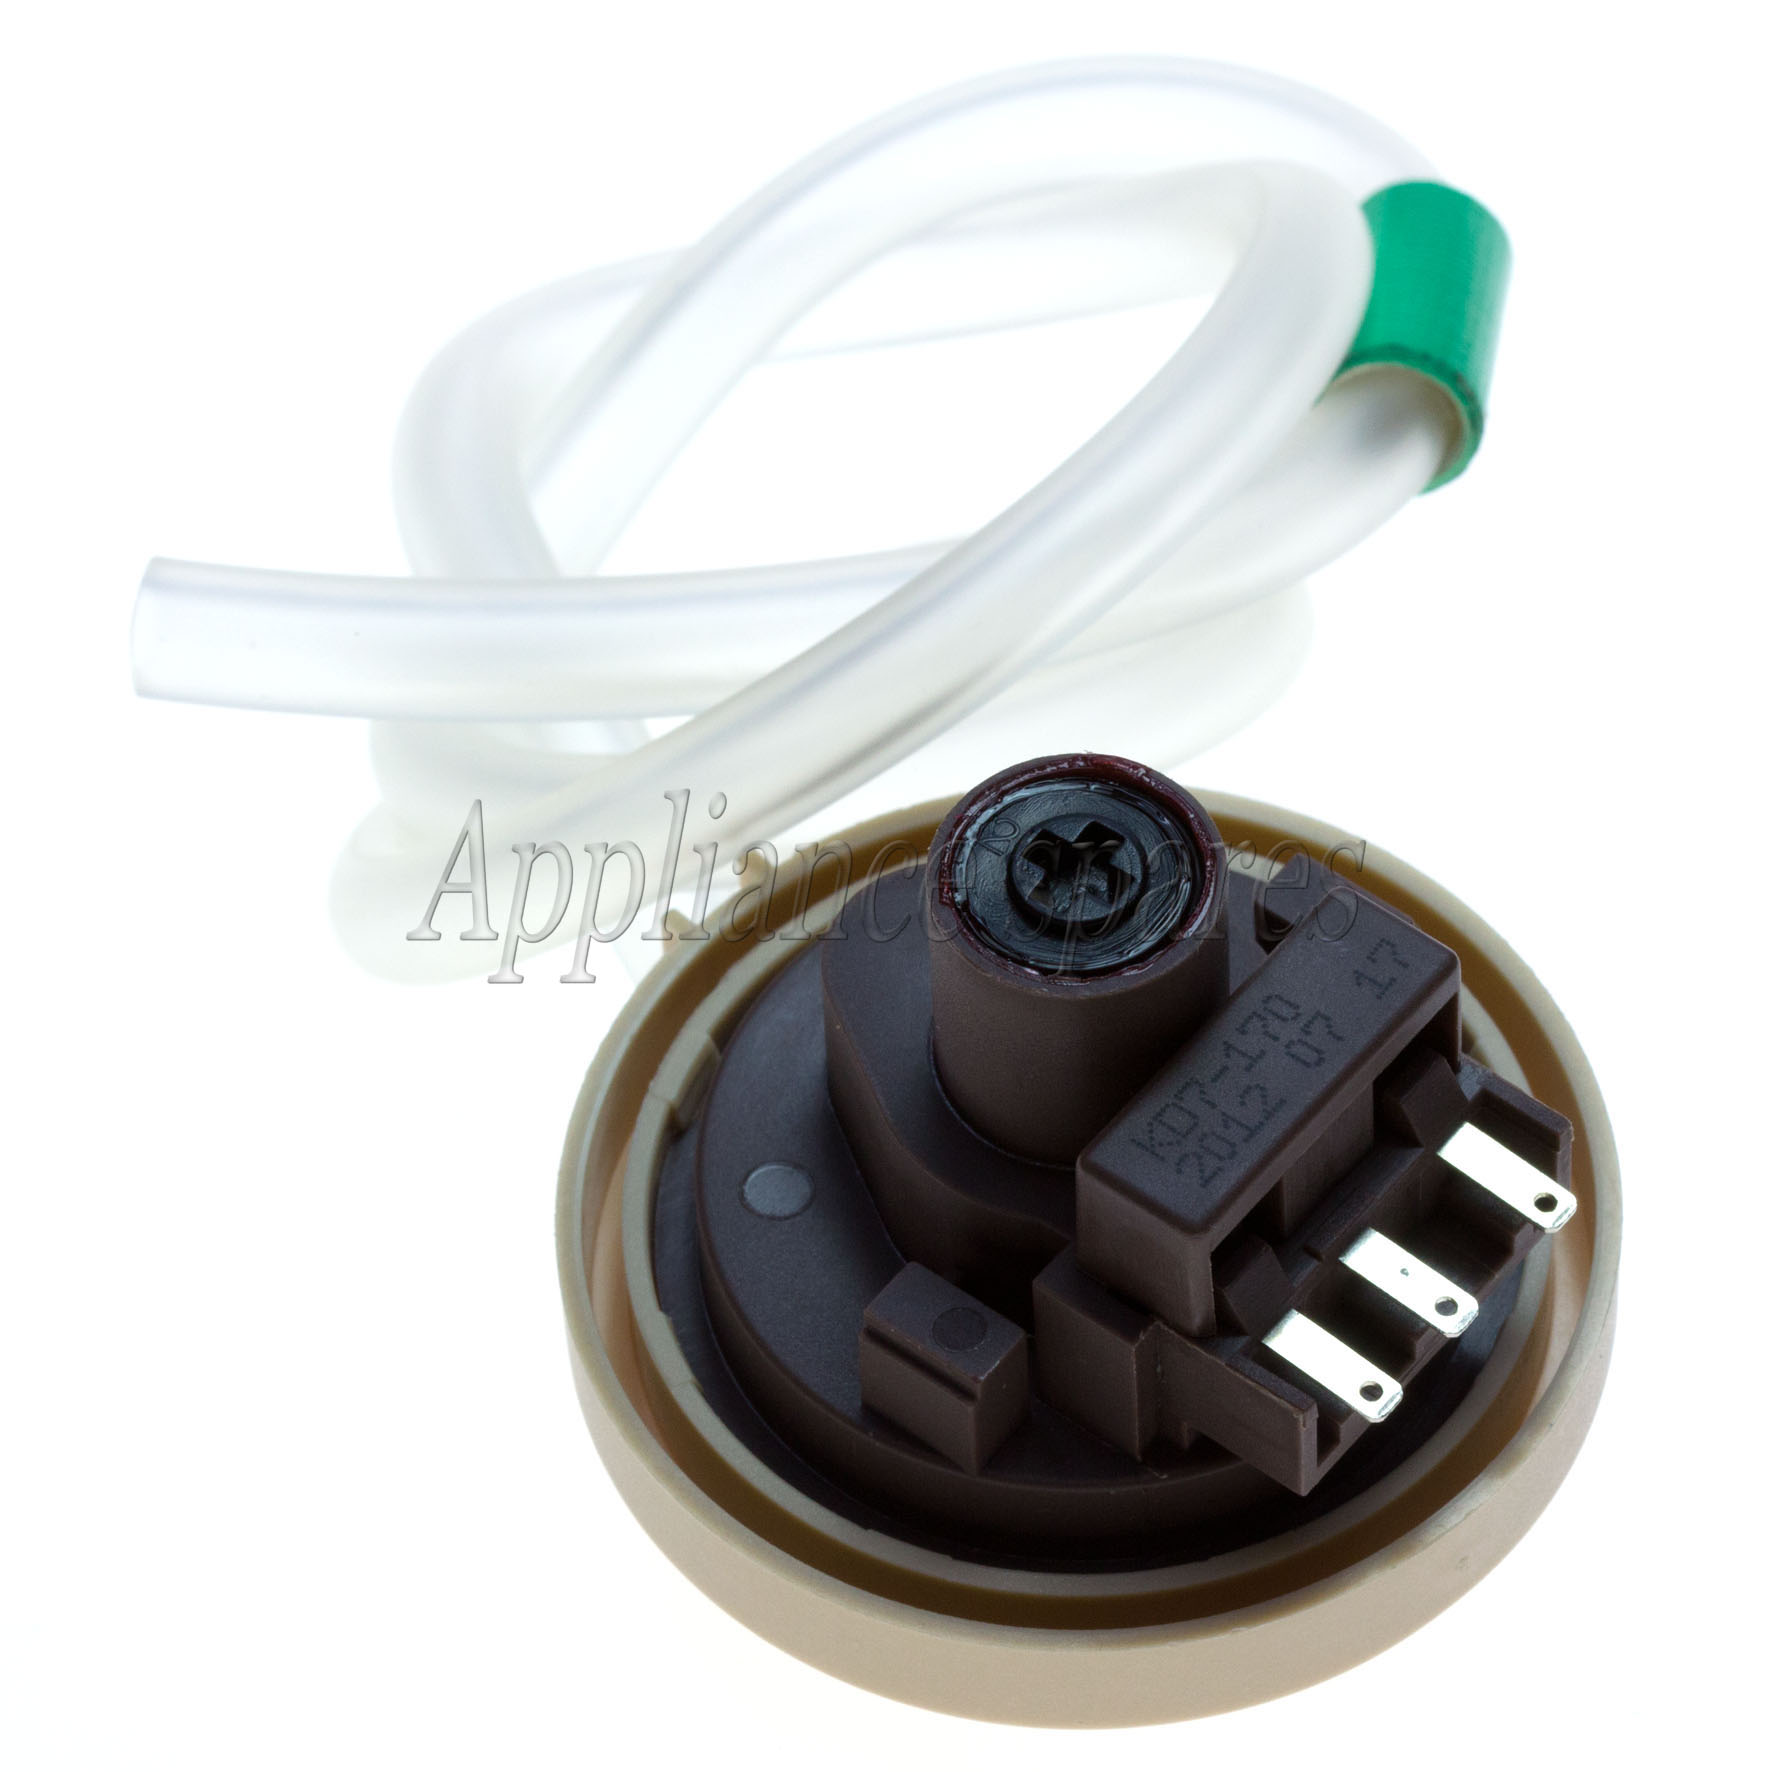 samsung top loader washing machine pressure switch 3 contacts lategan and. Black Bedroom Furniture Sets. Home Design Ideas